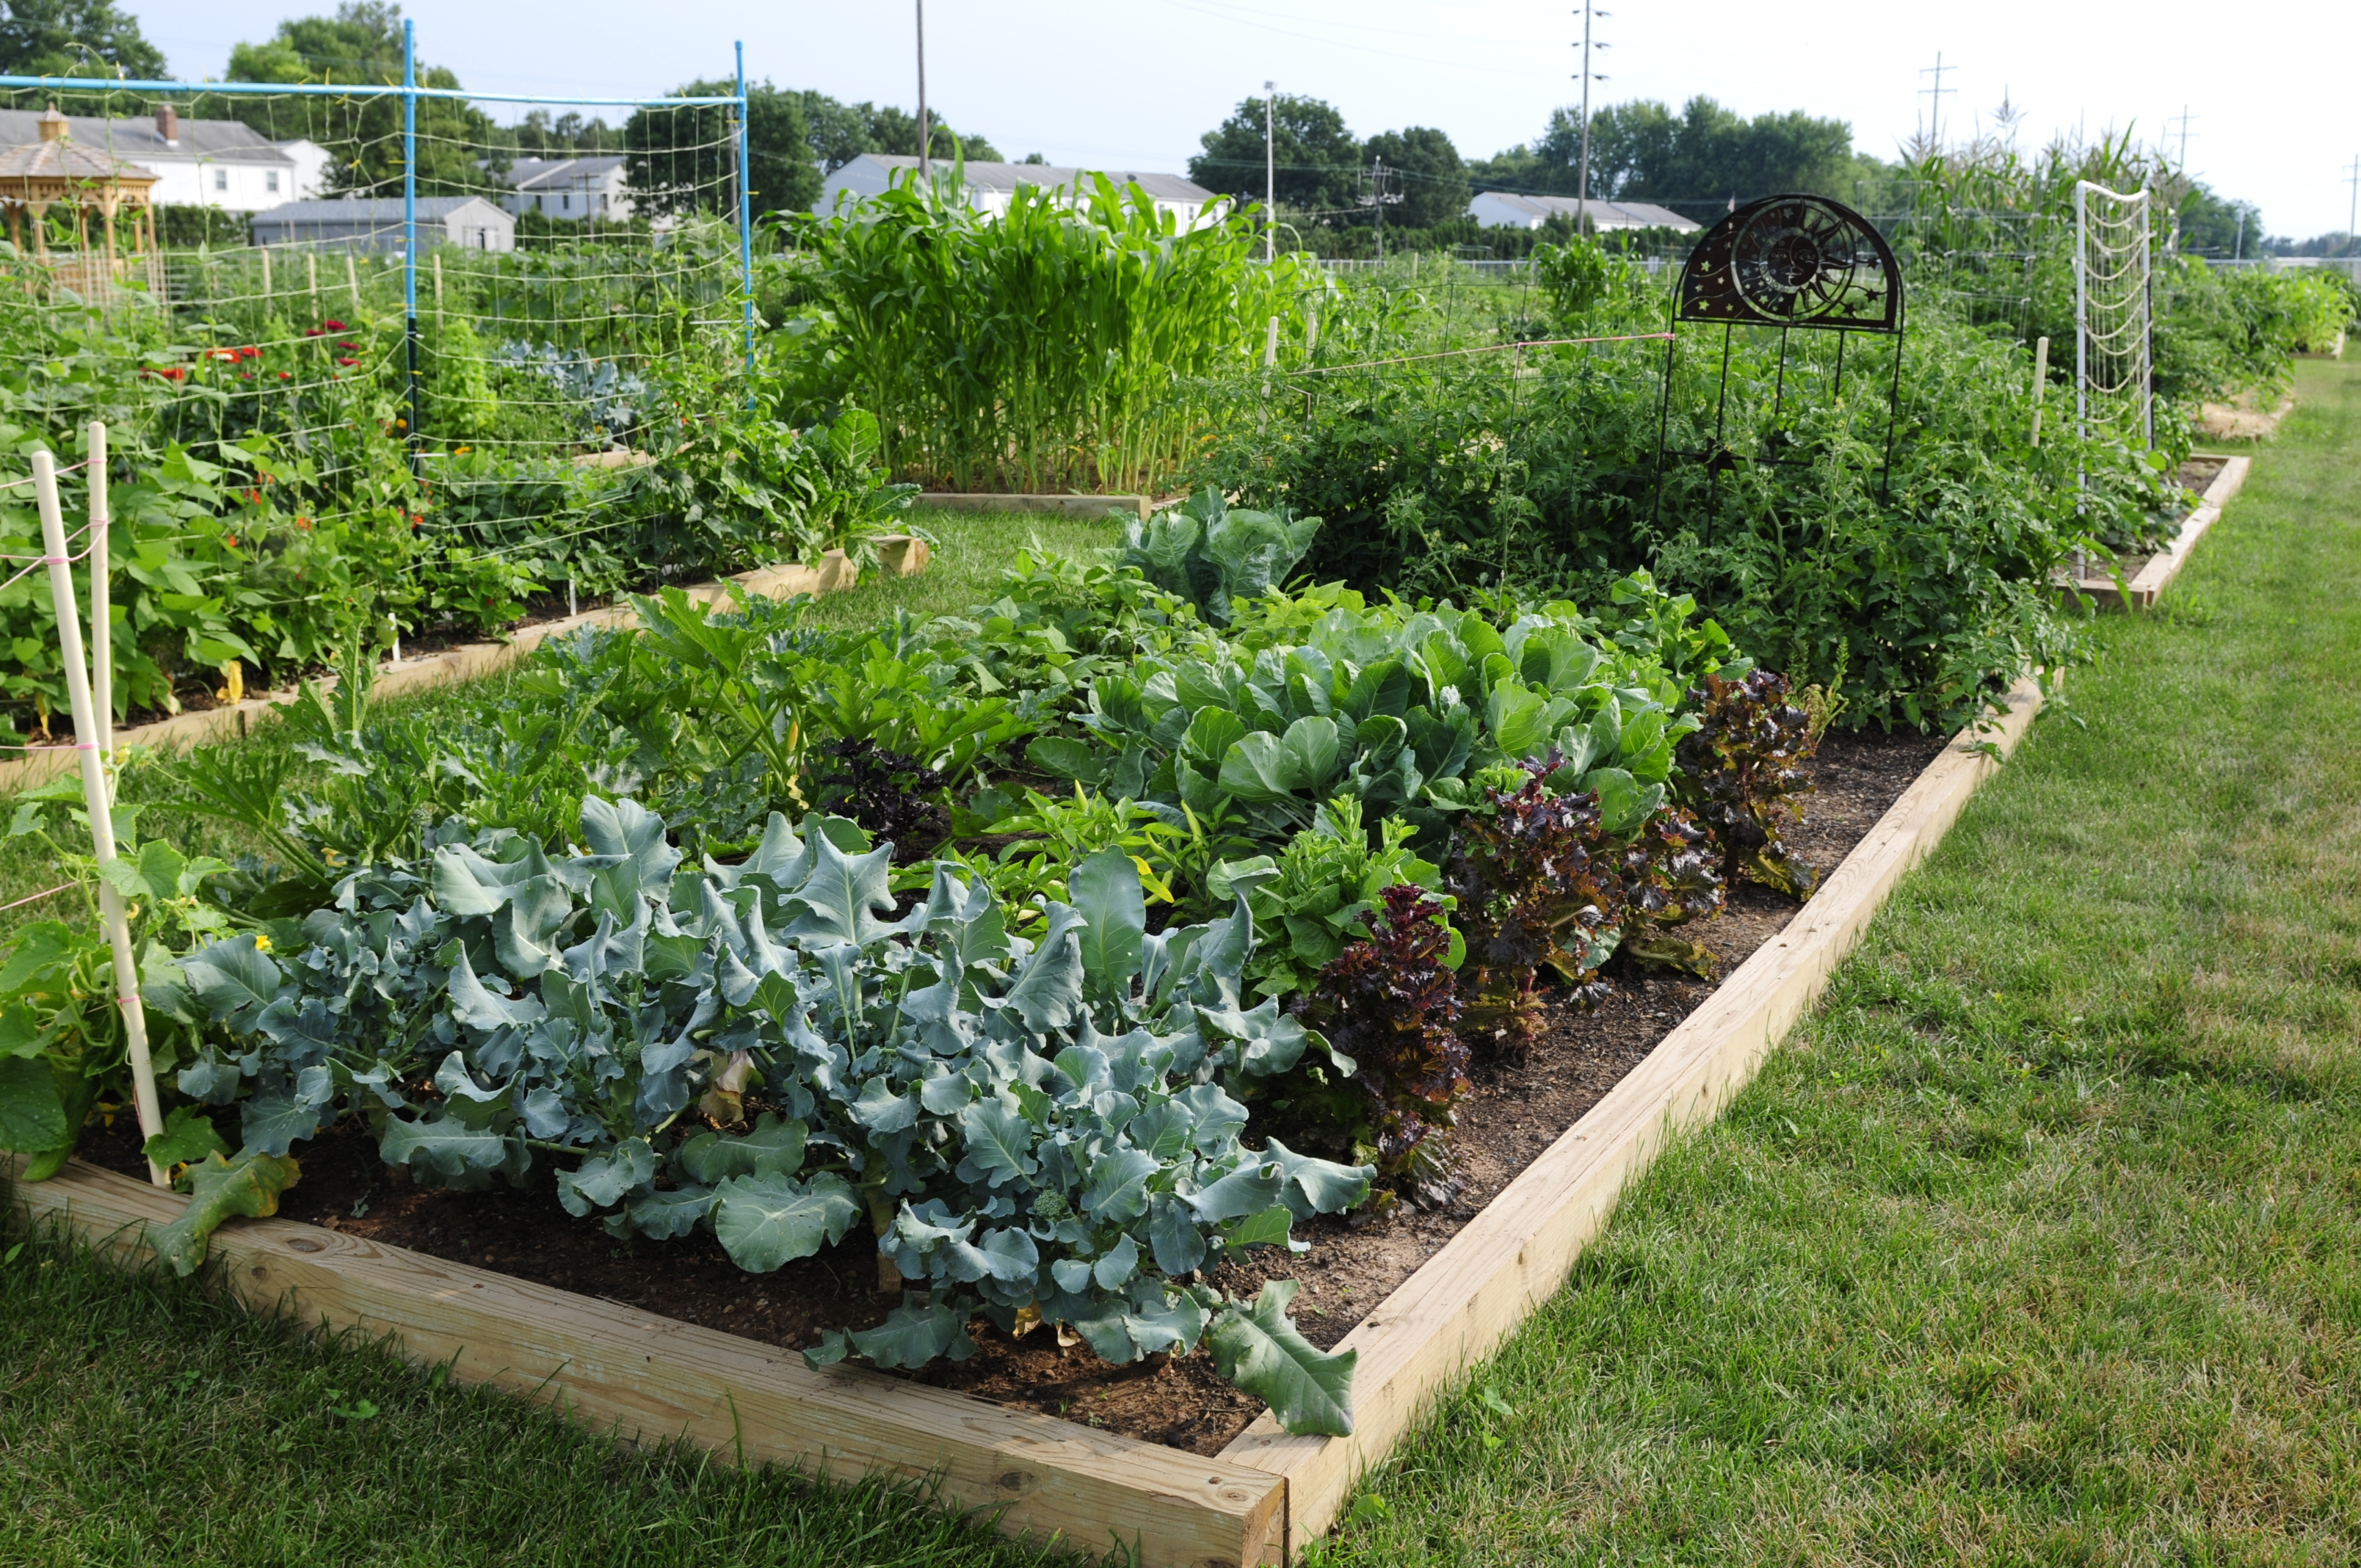 Free money and help for a school garden garden housecalls Garden club program ideas